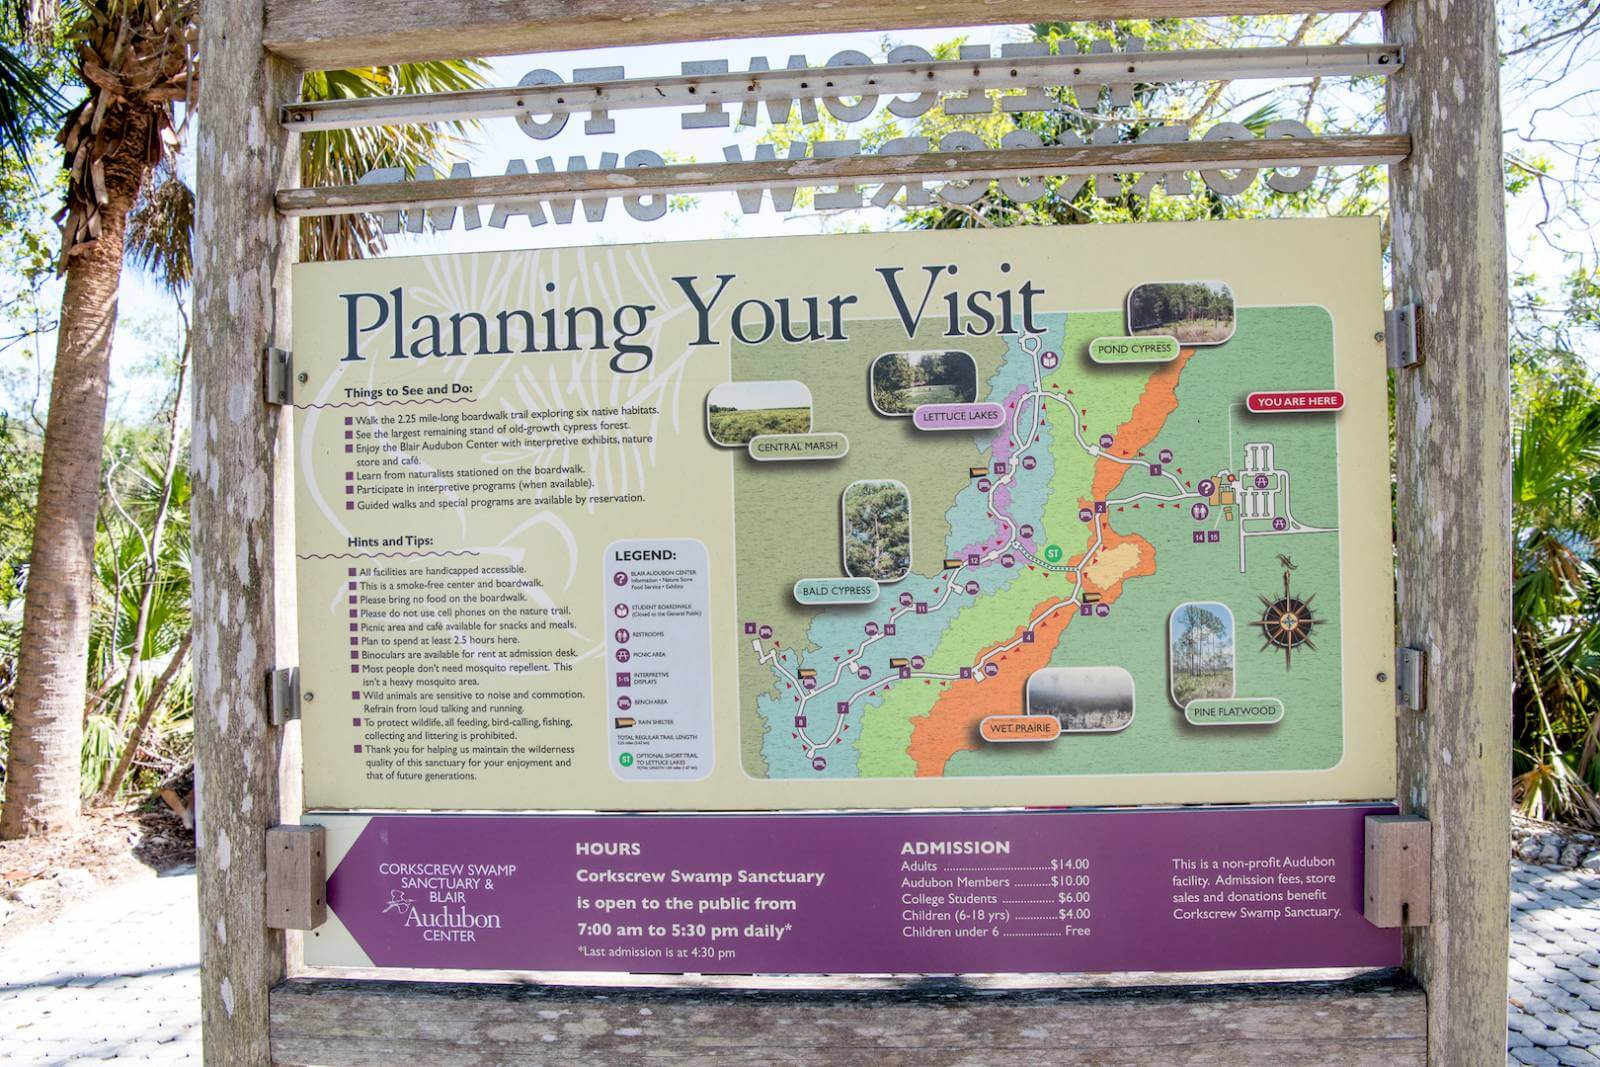 Planning your visit to the Audubon Corkscrew Swamp Sanctuary in Naples, Florida. Photo by Jennifer Brinkman | Must Do Visitor Guides, MustDo.com